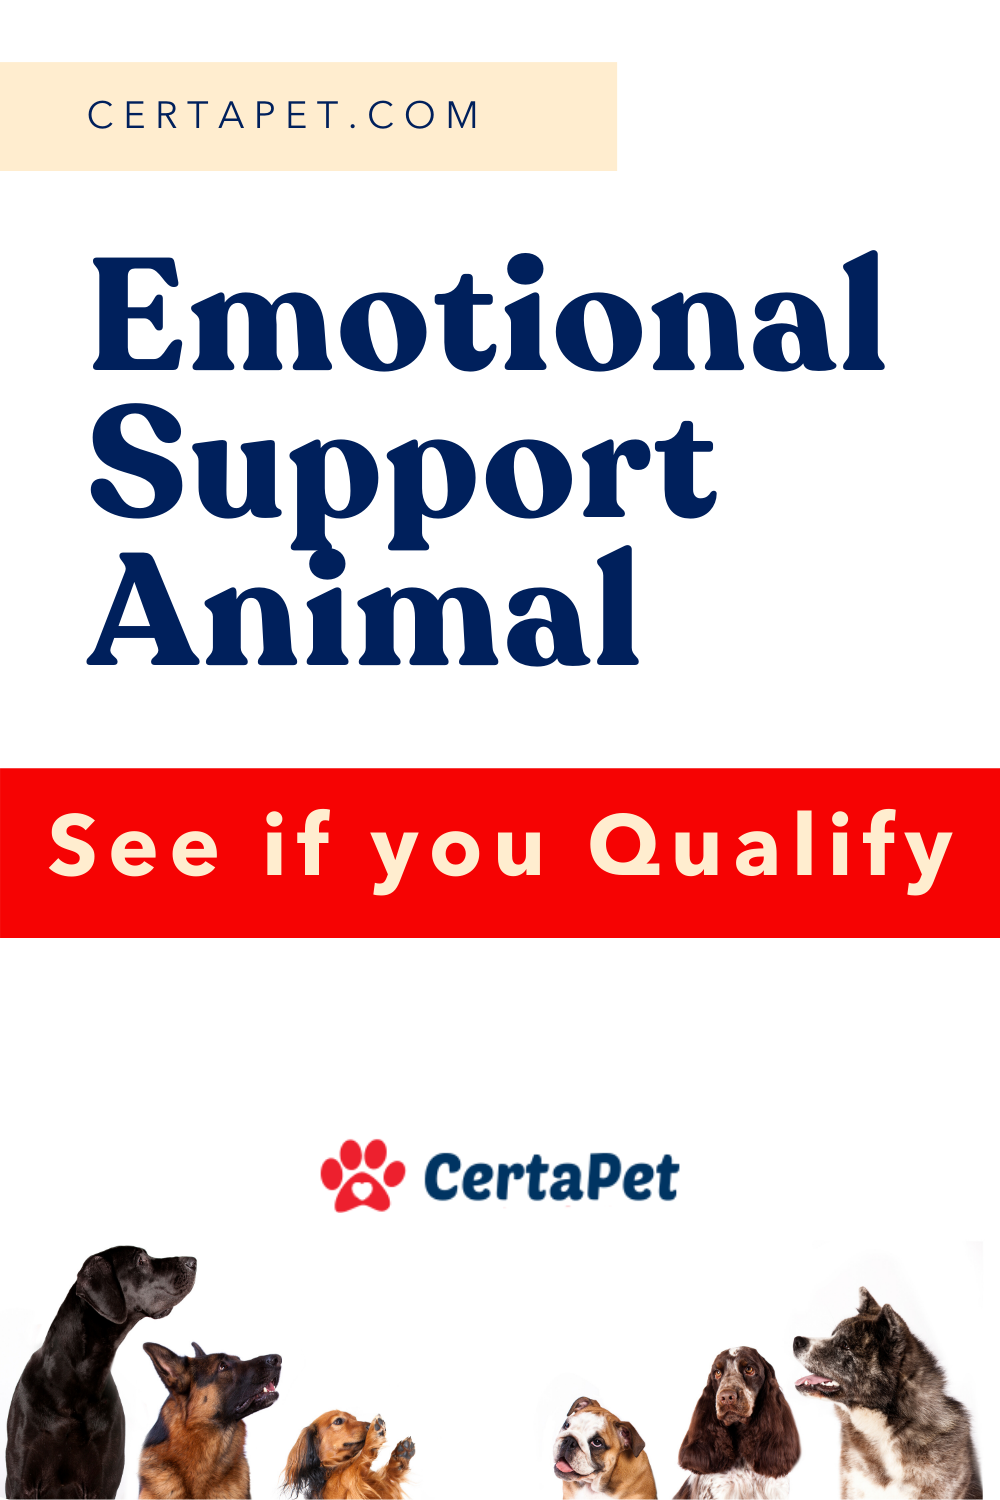 Getting your emotional support animal is as easy as 1, 2